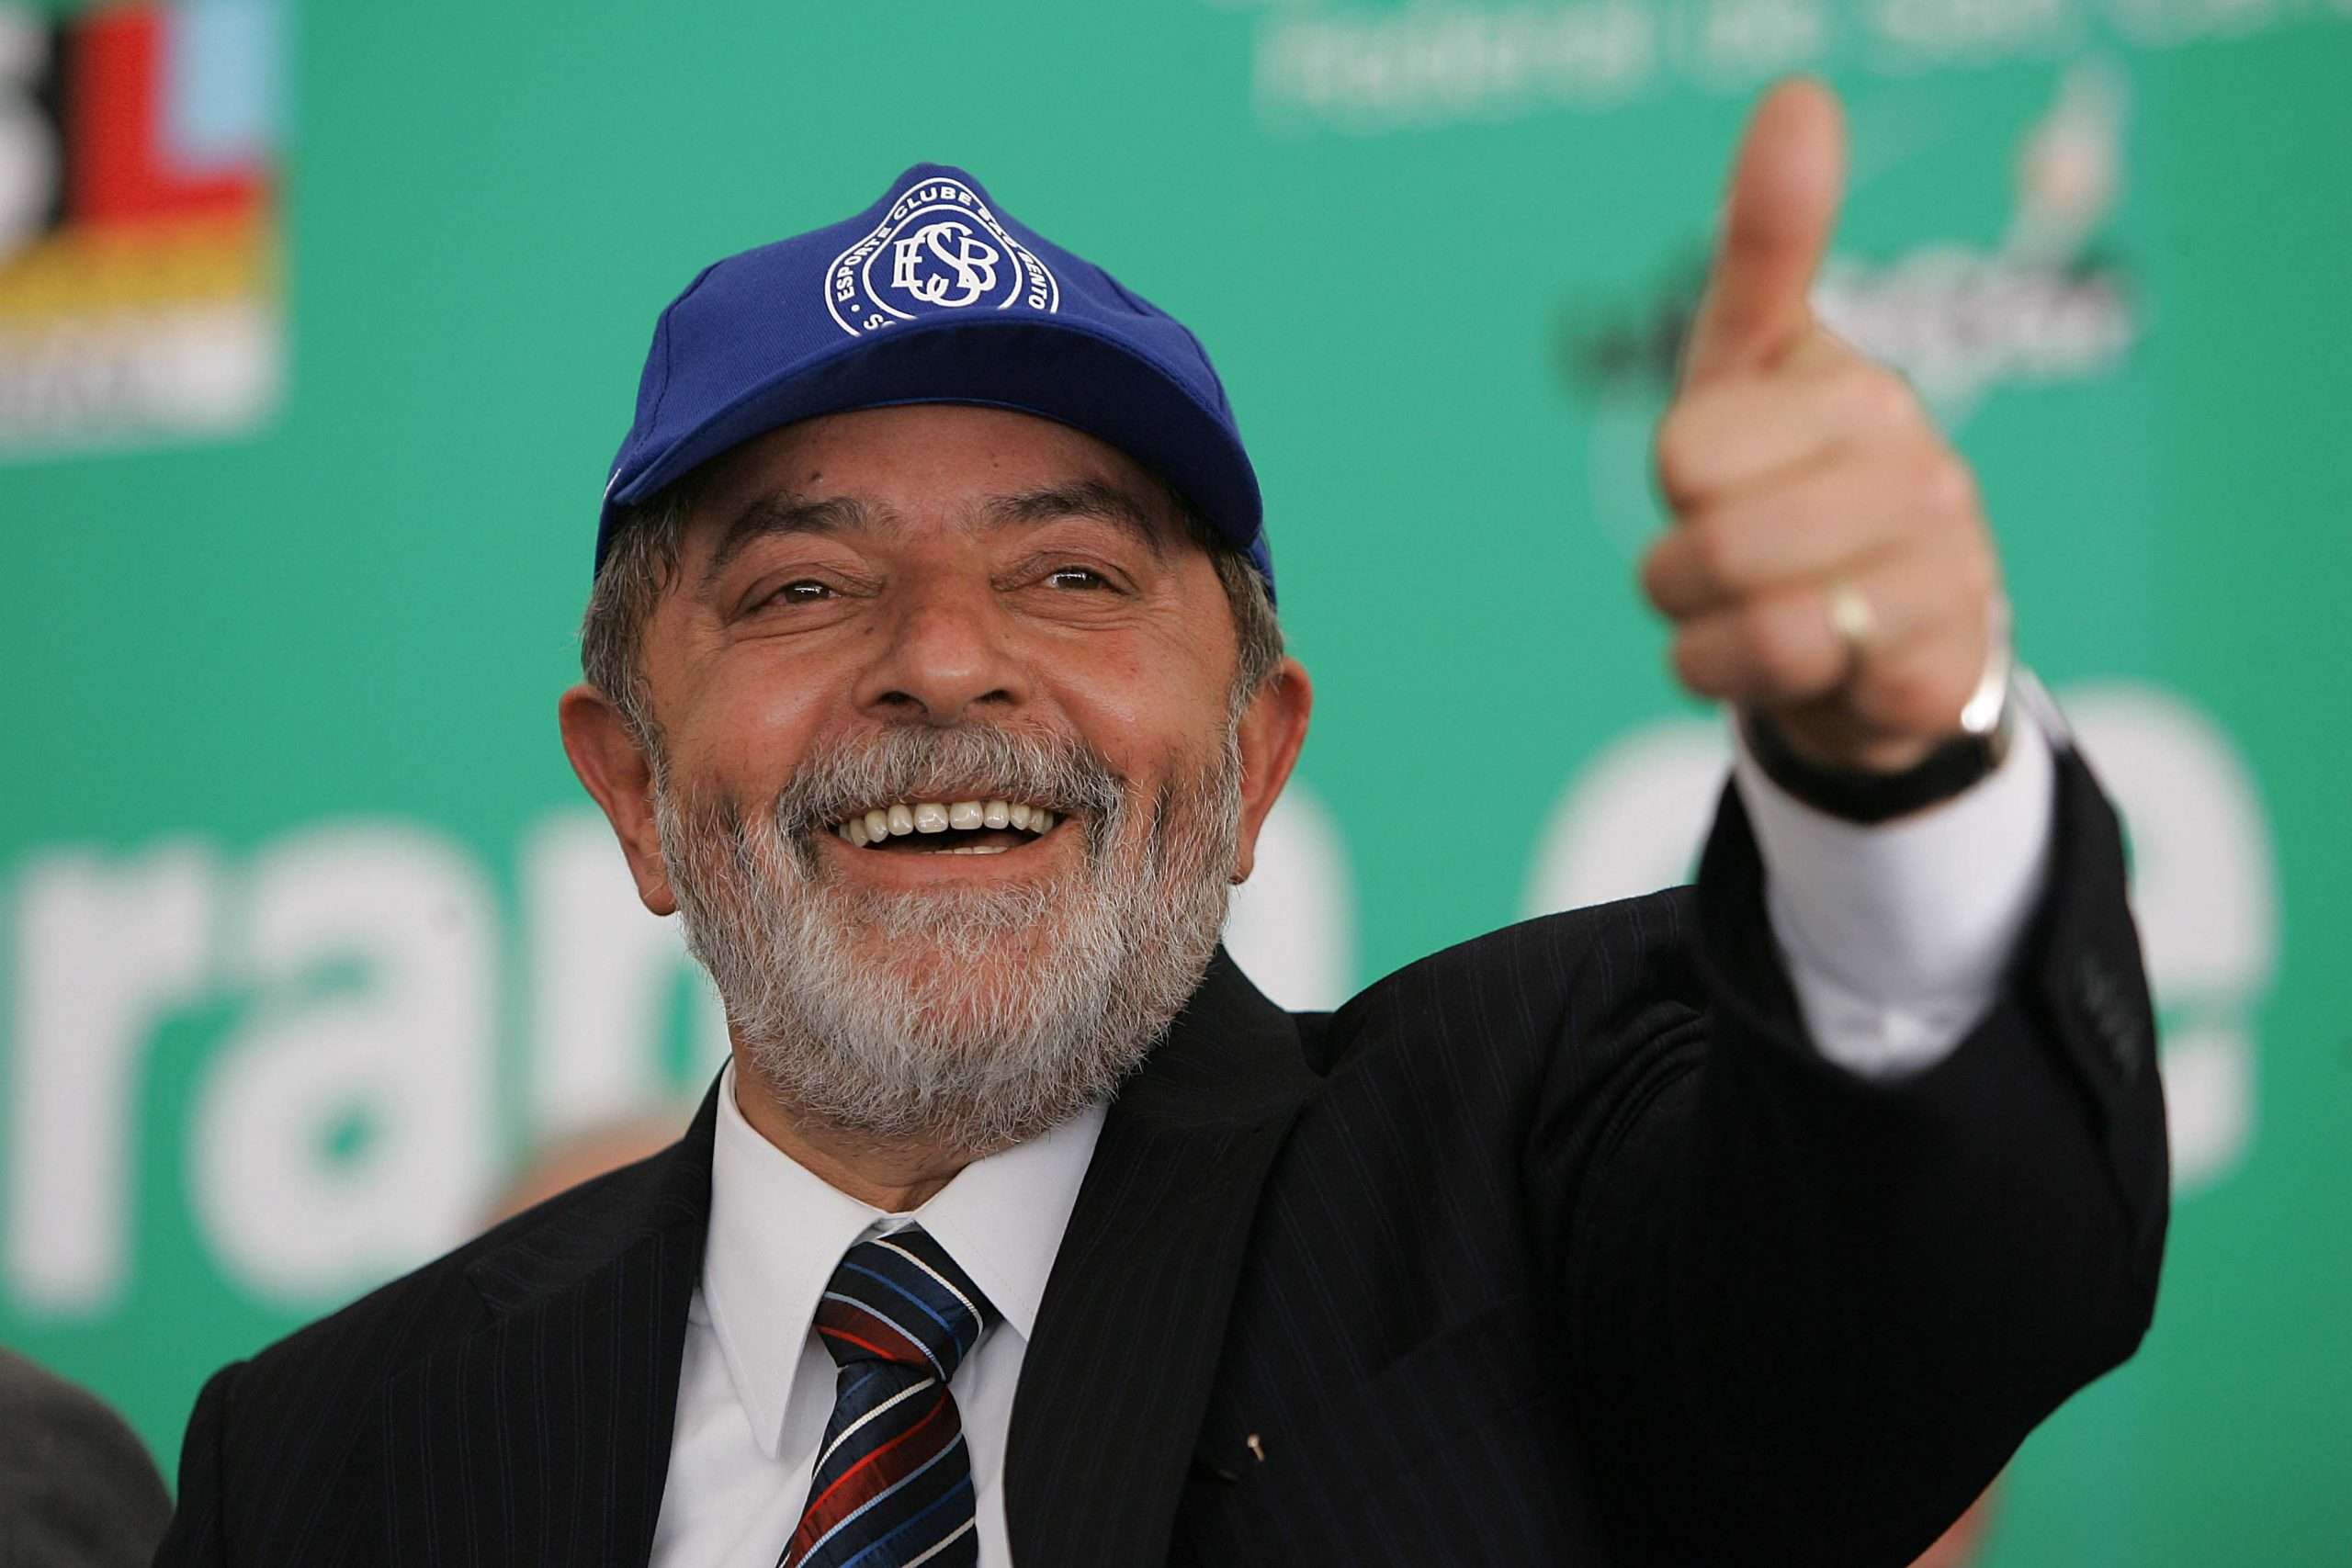 President Lula in 2006 scaled 1